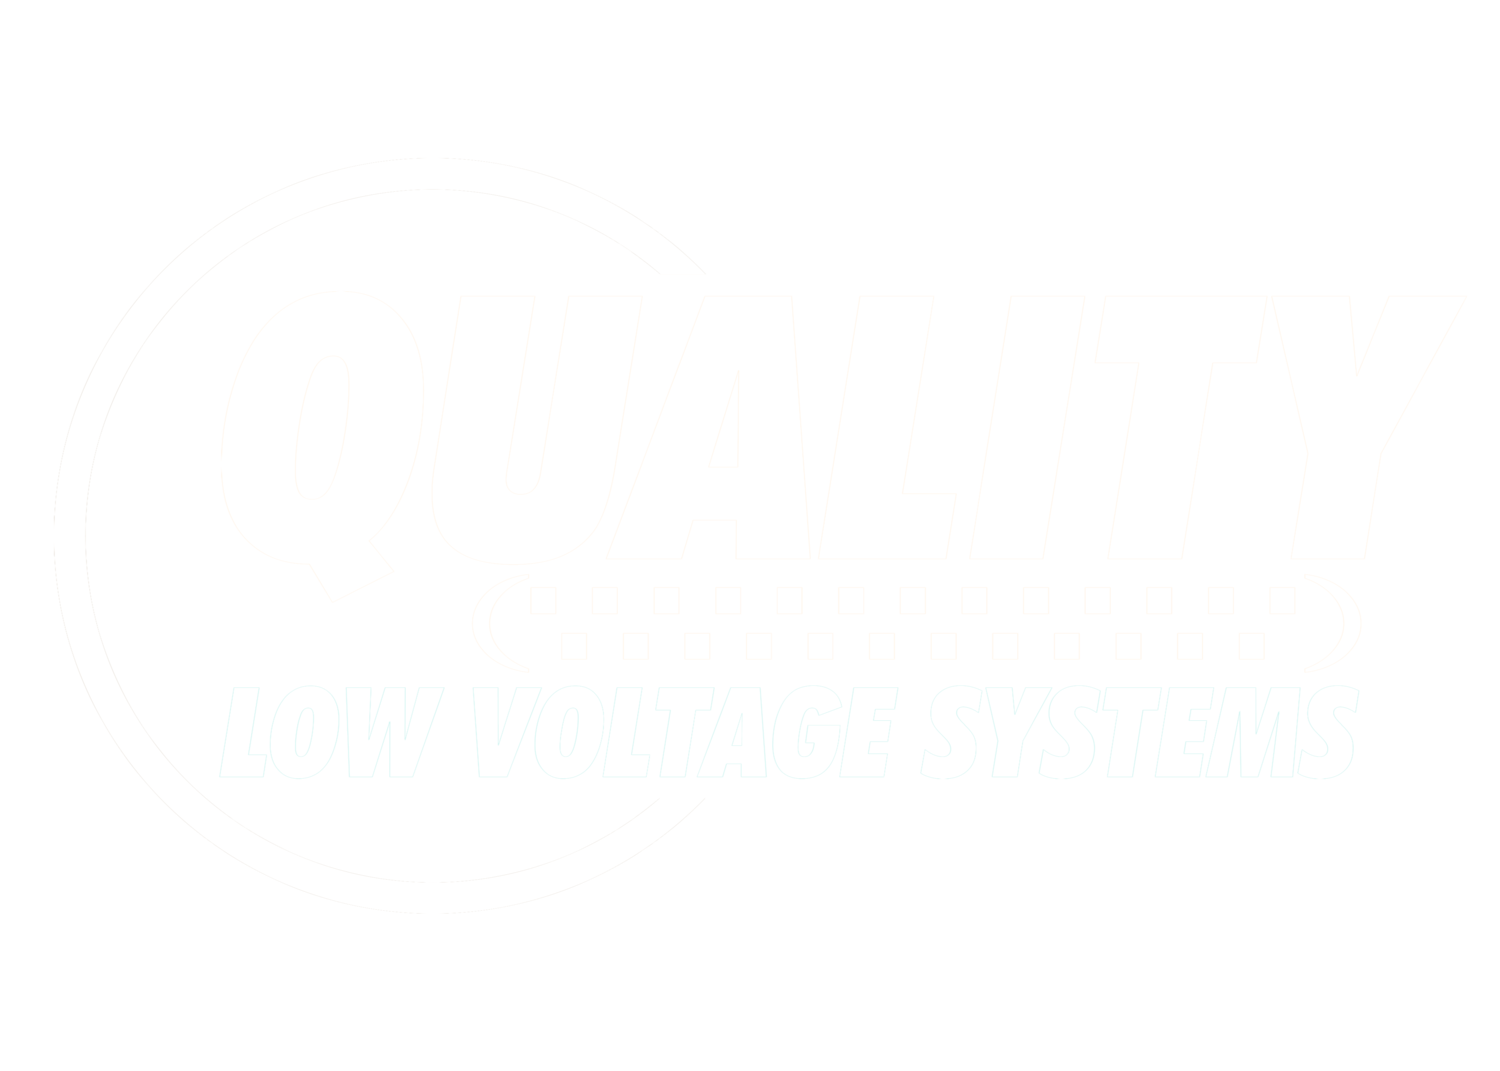 QUALITY LOW VOLTAGE SYSTEMS